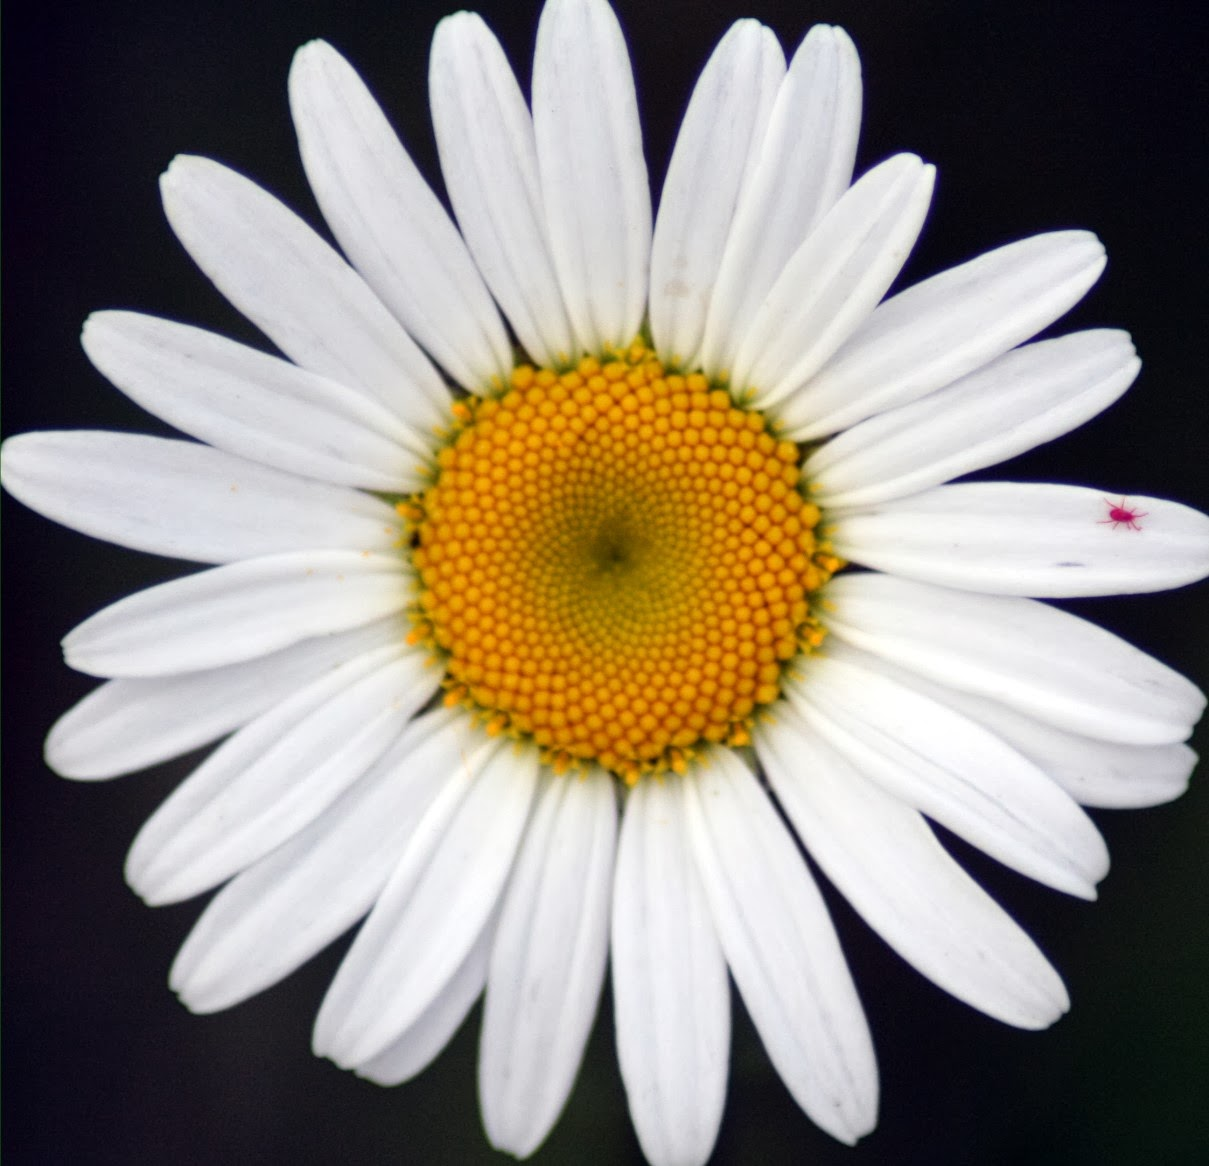 The flower garden daisy flower meaning as of date more than 12000 species of daisy with different flower color izmirmasajfo